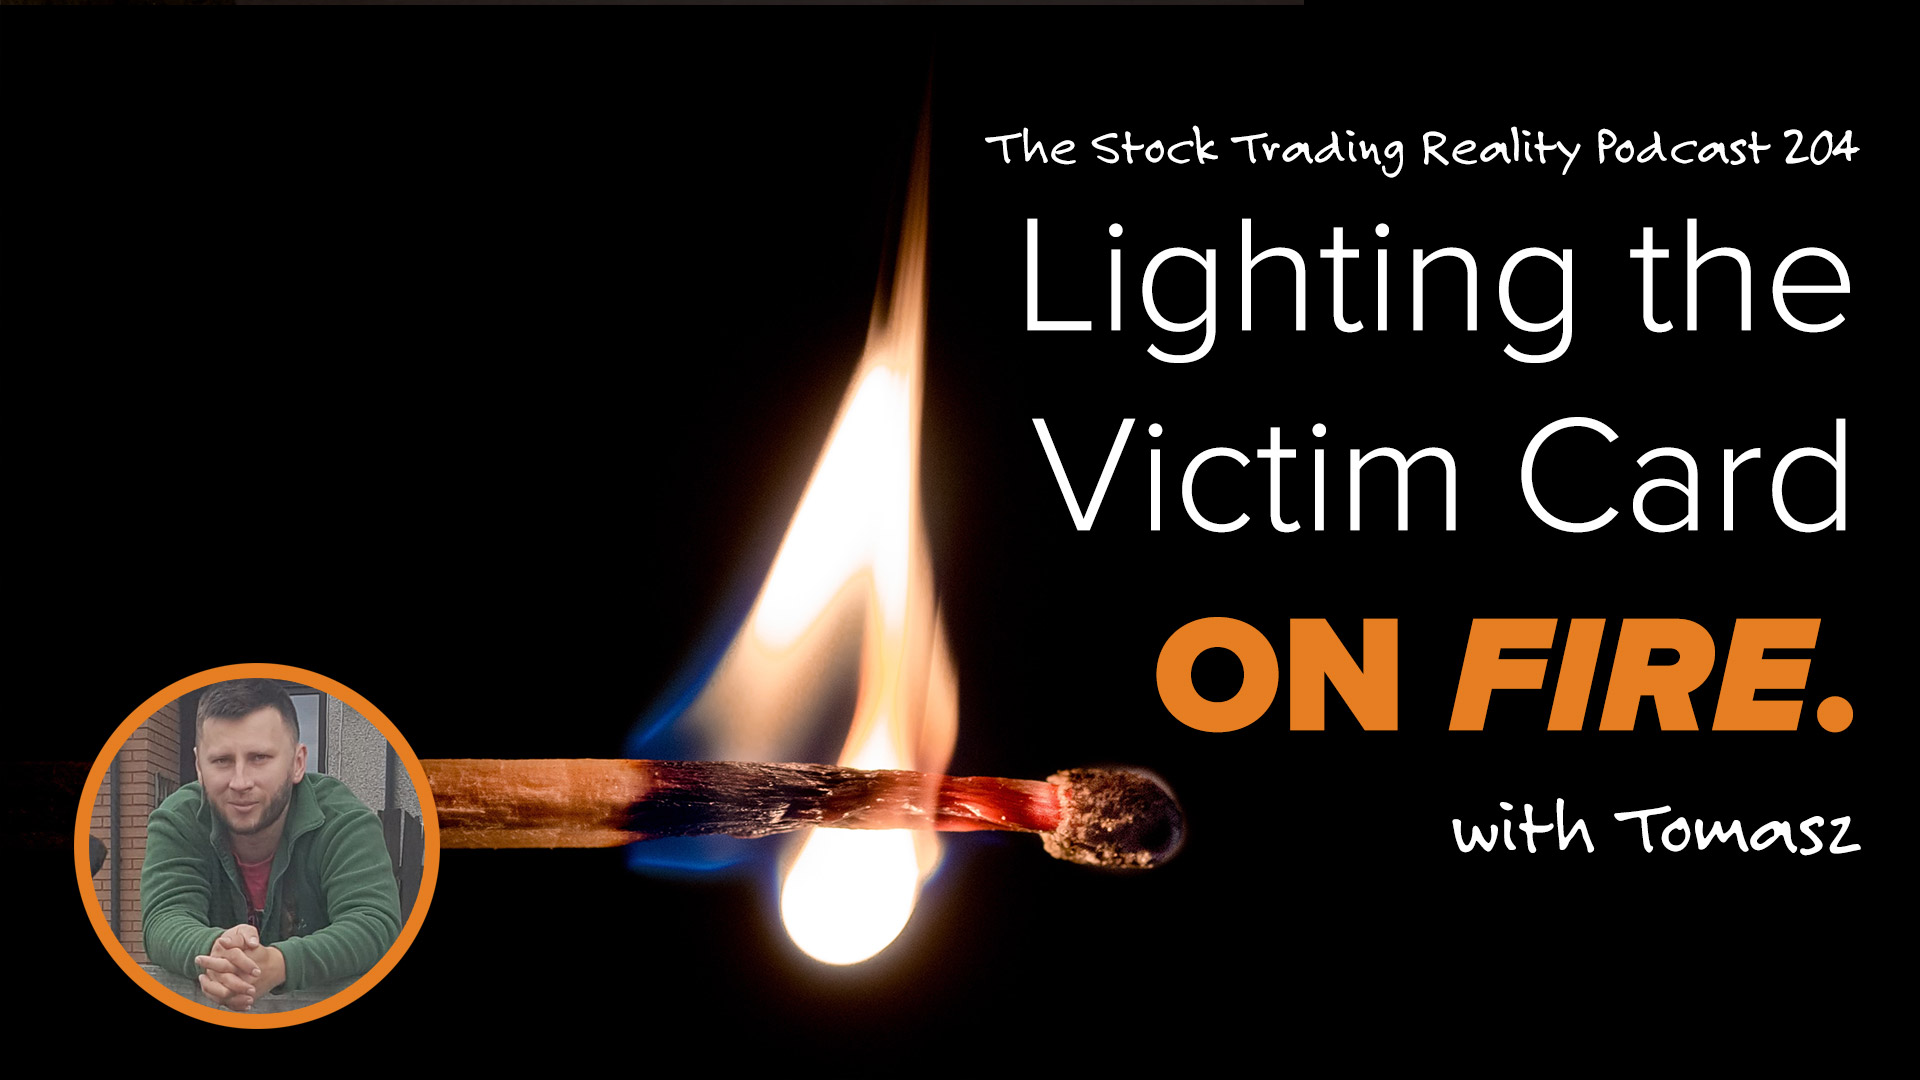 STR 204: Lighting the Victim Card on Fire.